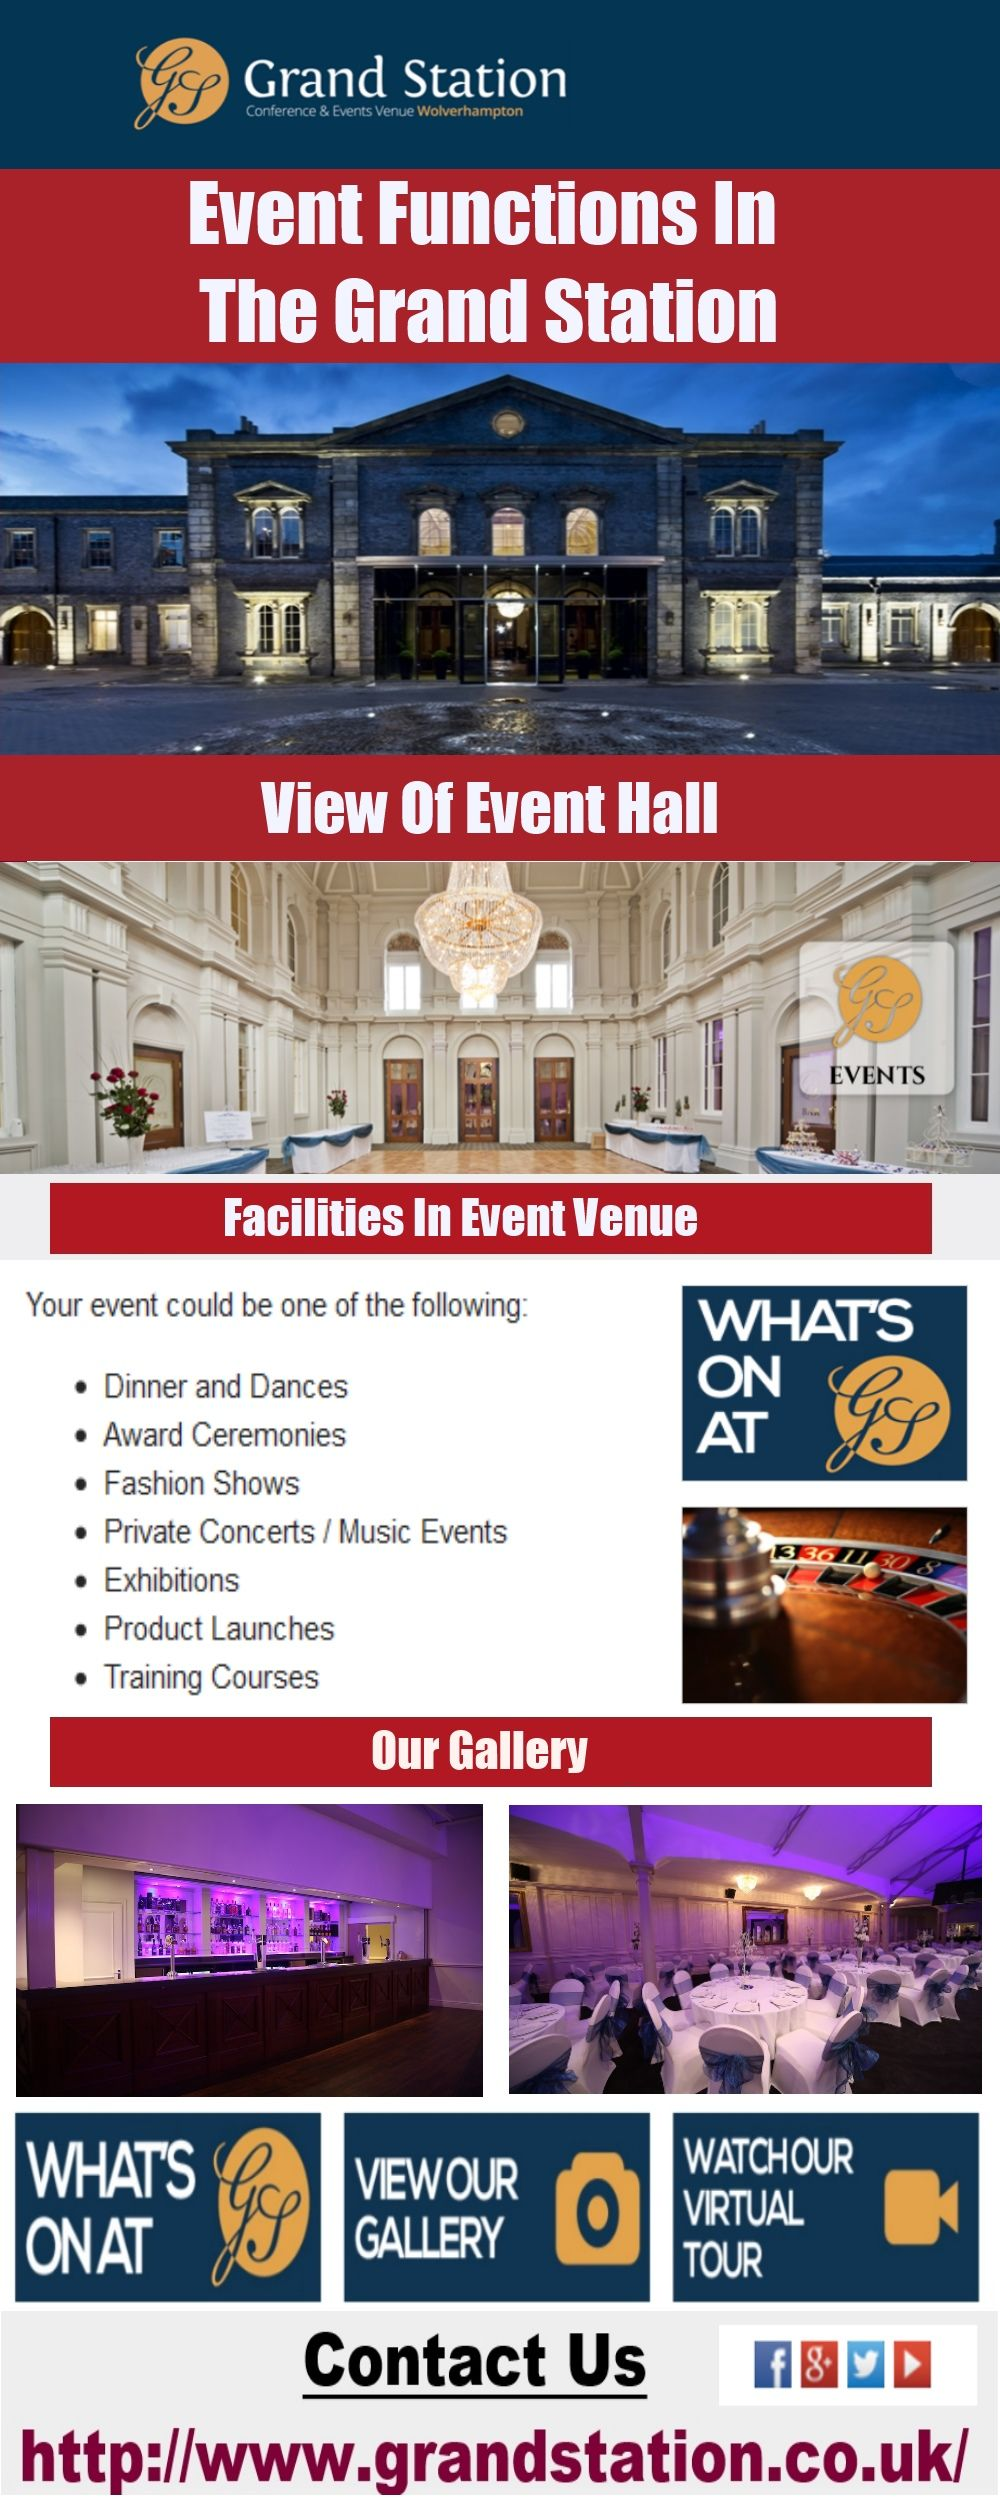 Book Event Halls At Grand Station At Affordable Rates All Types Of